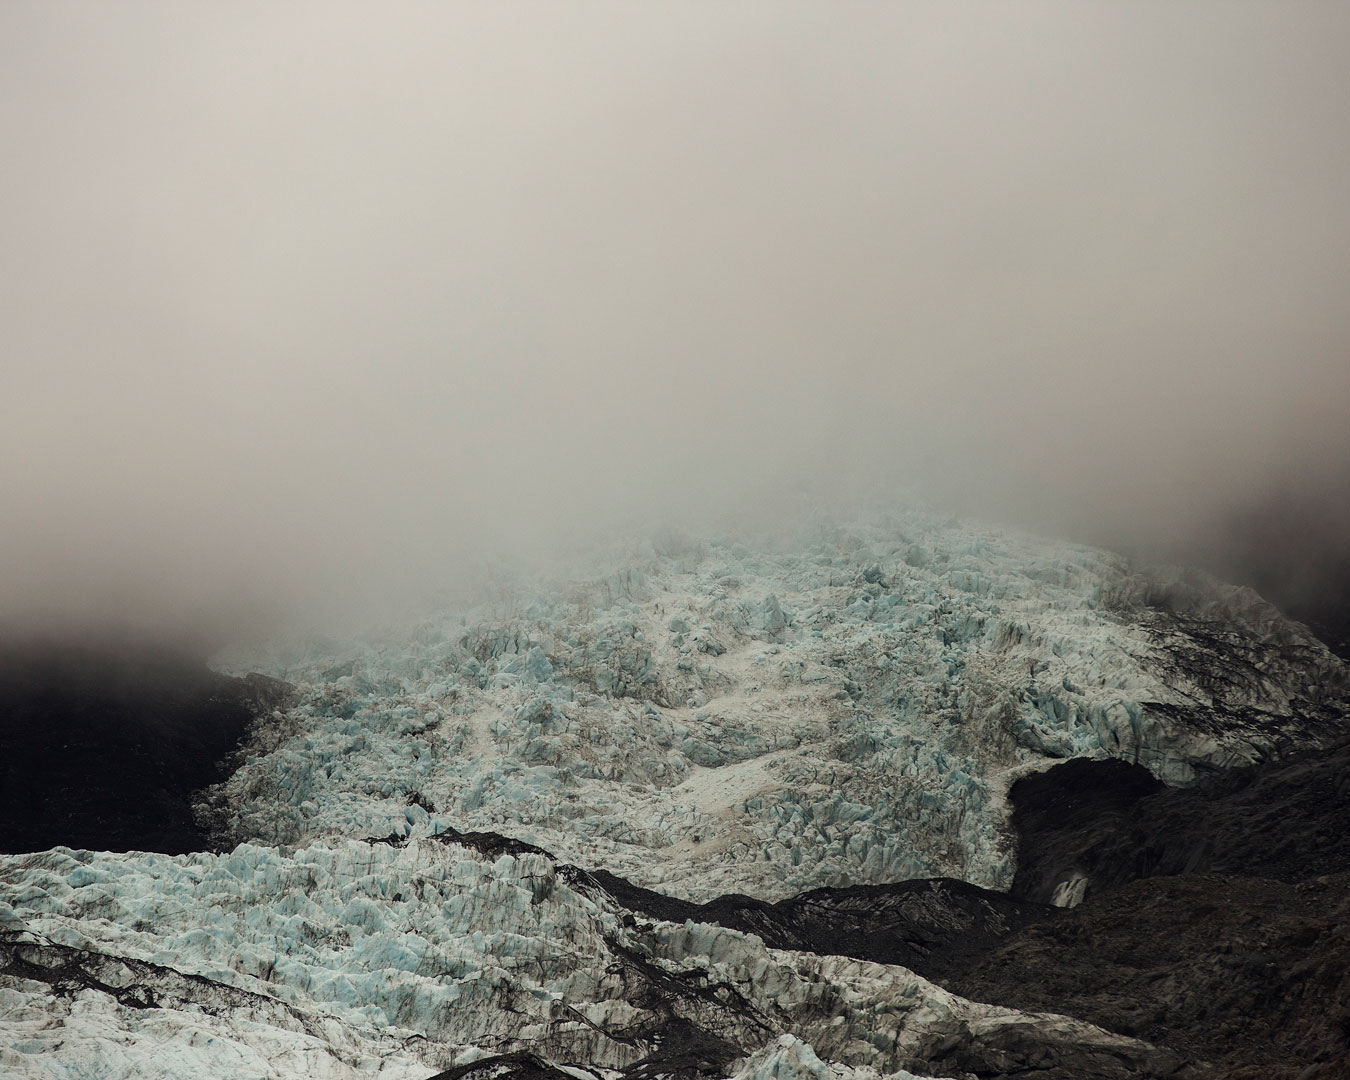 new-zealand-mountain-range-snow-covered-in-mist